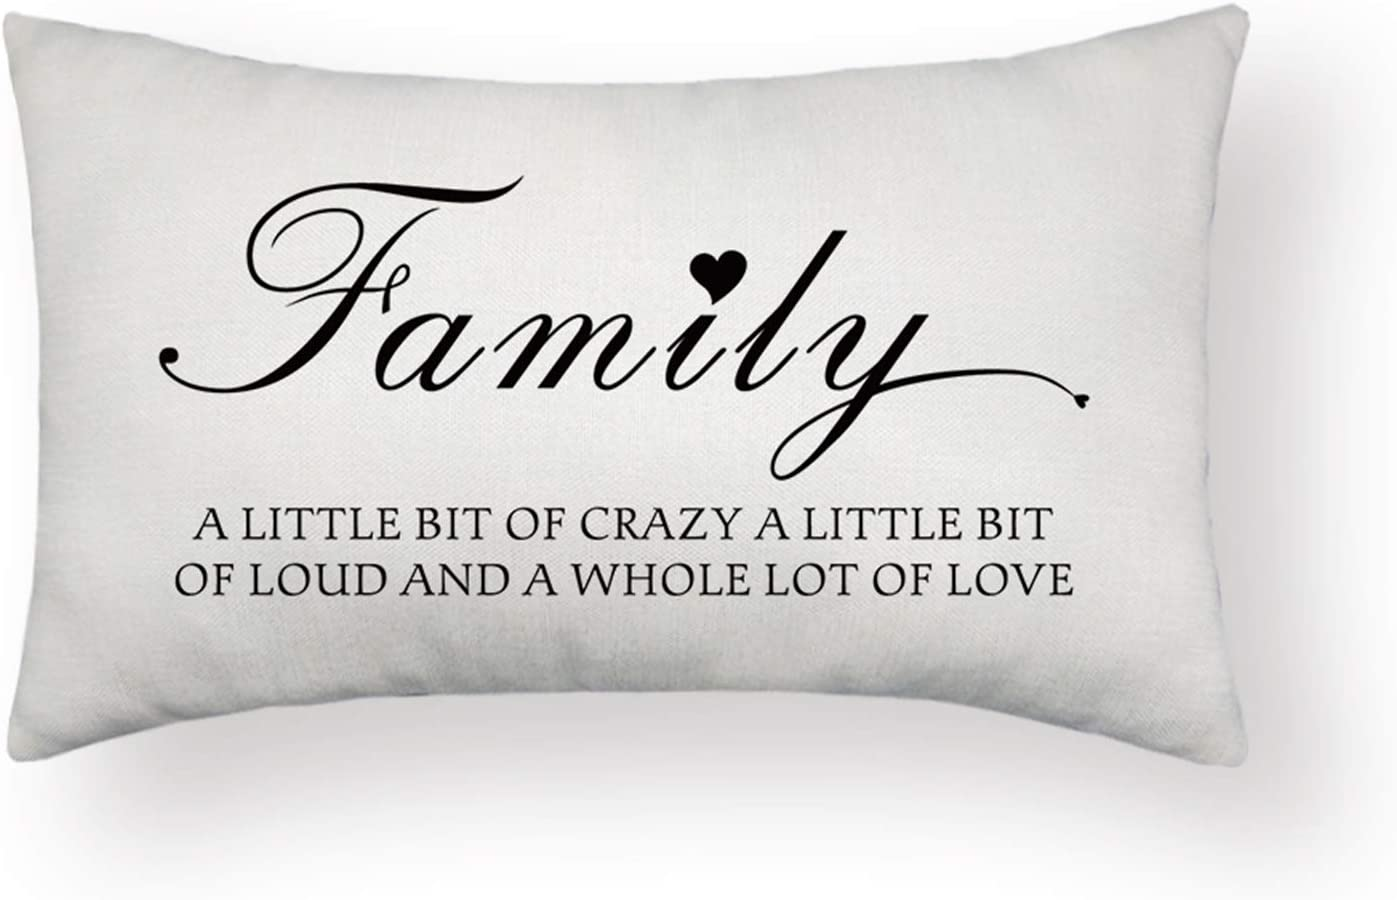 HOMANGA Farmhouse Pillow Covers, Family a Little Bit of Crazy Quotes Throw Pillow Covers, 12 x 20 Inch Decorative Lumbar Throw Pillow Cases, Rectangle Pillow Case for Family Home Decor